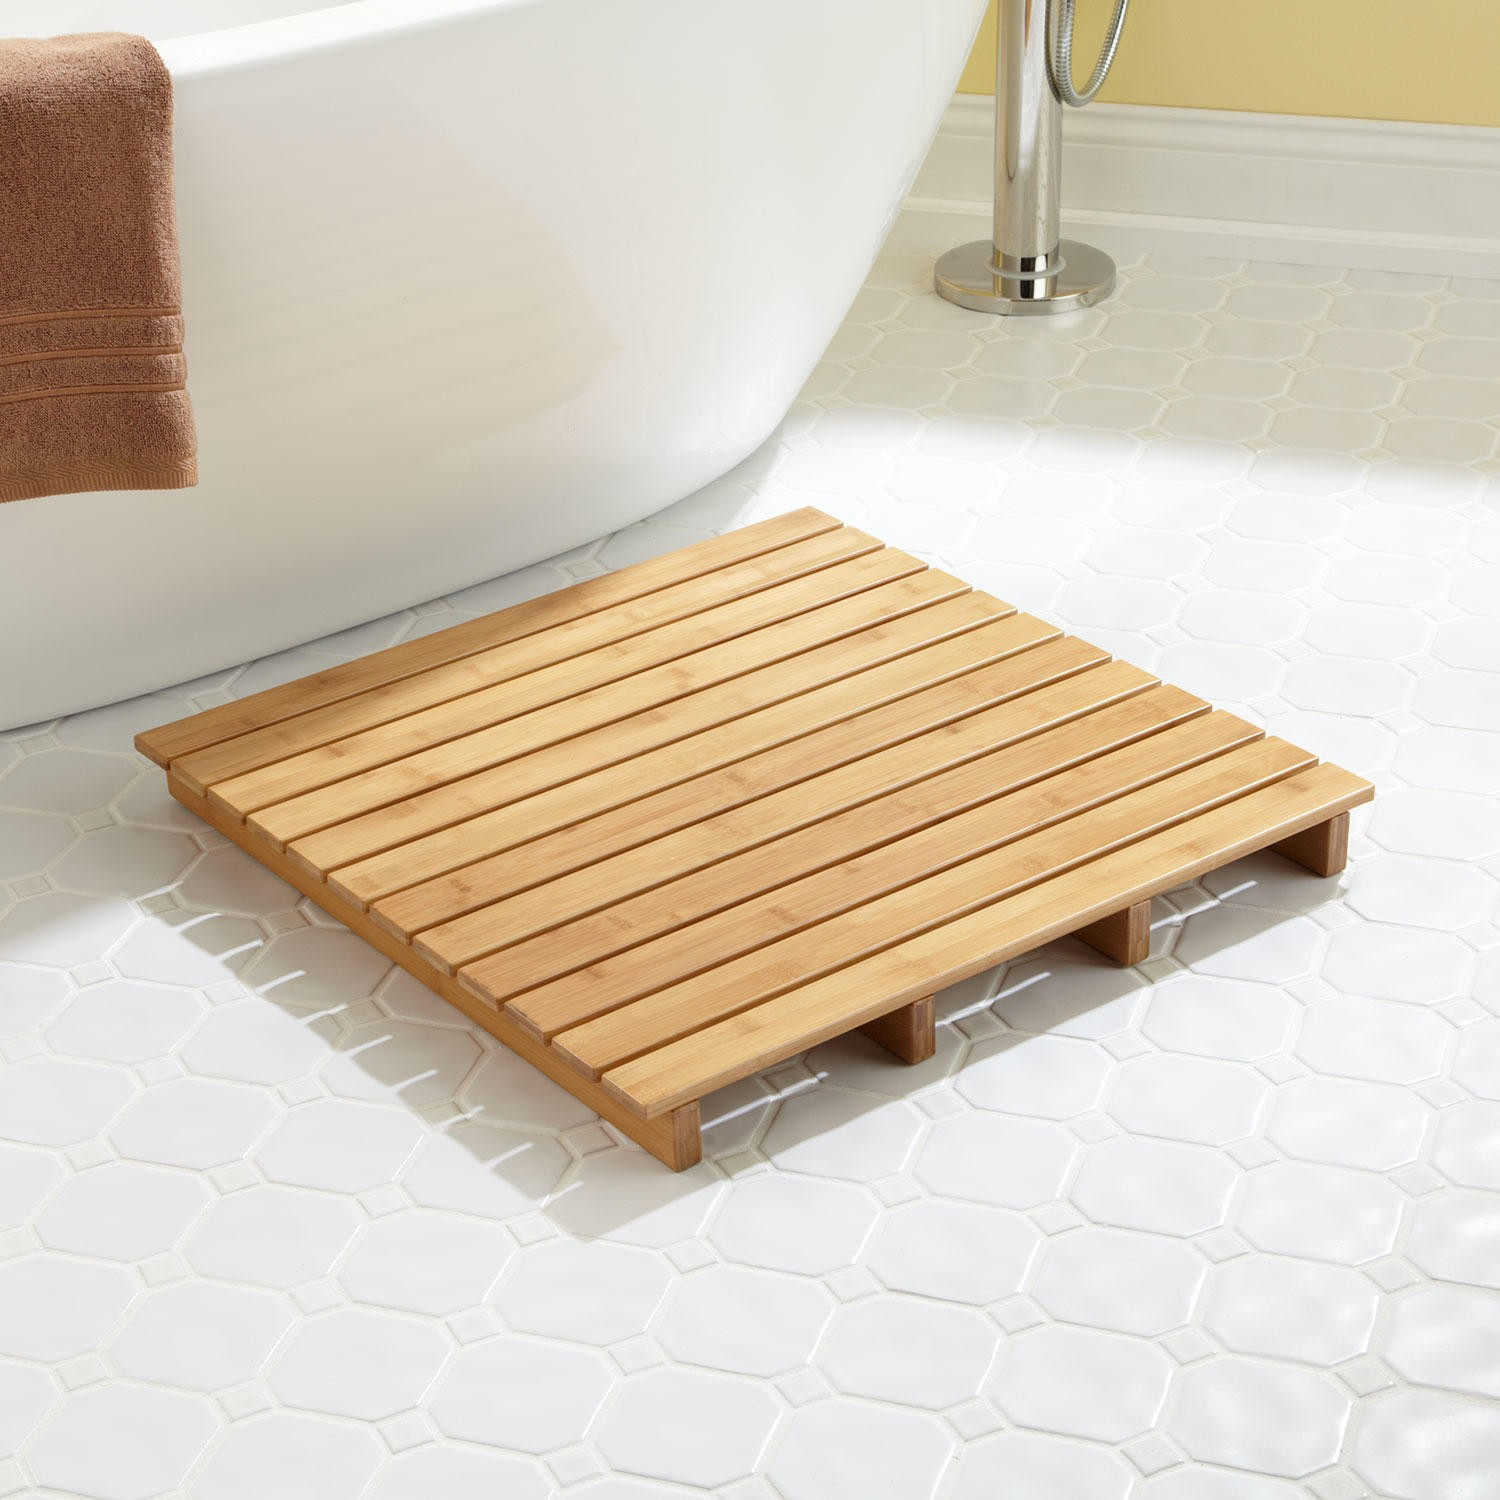 bath mat ideas to make your bathroom feel more like a spa -  small teak bath mat